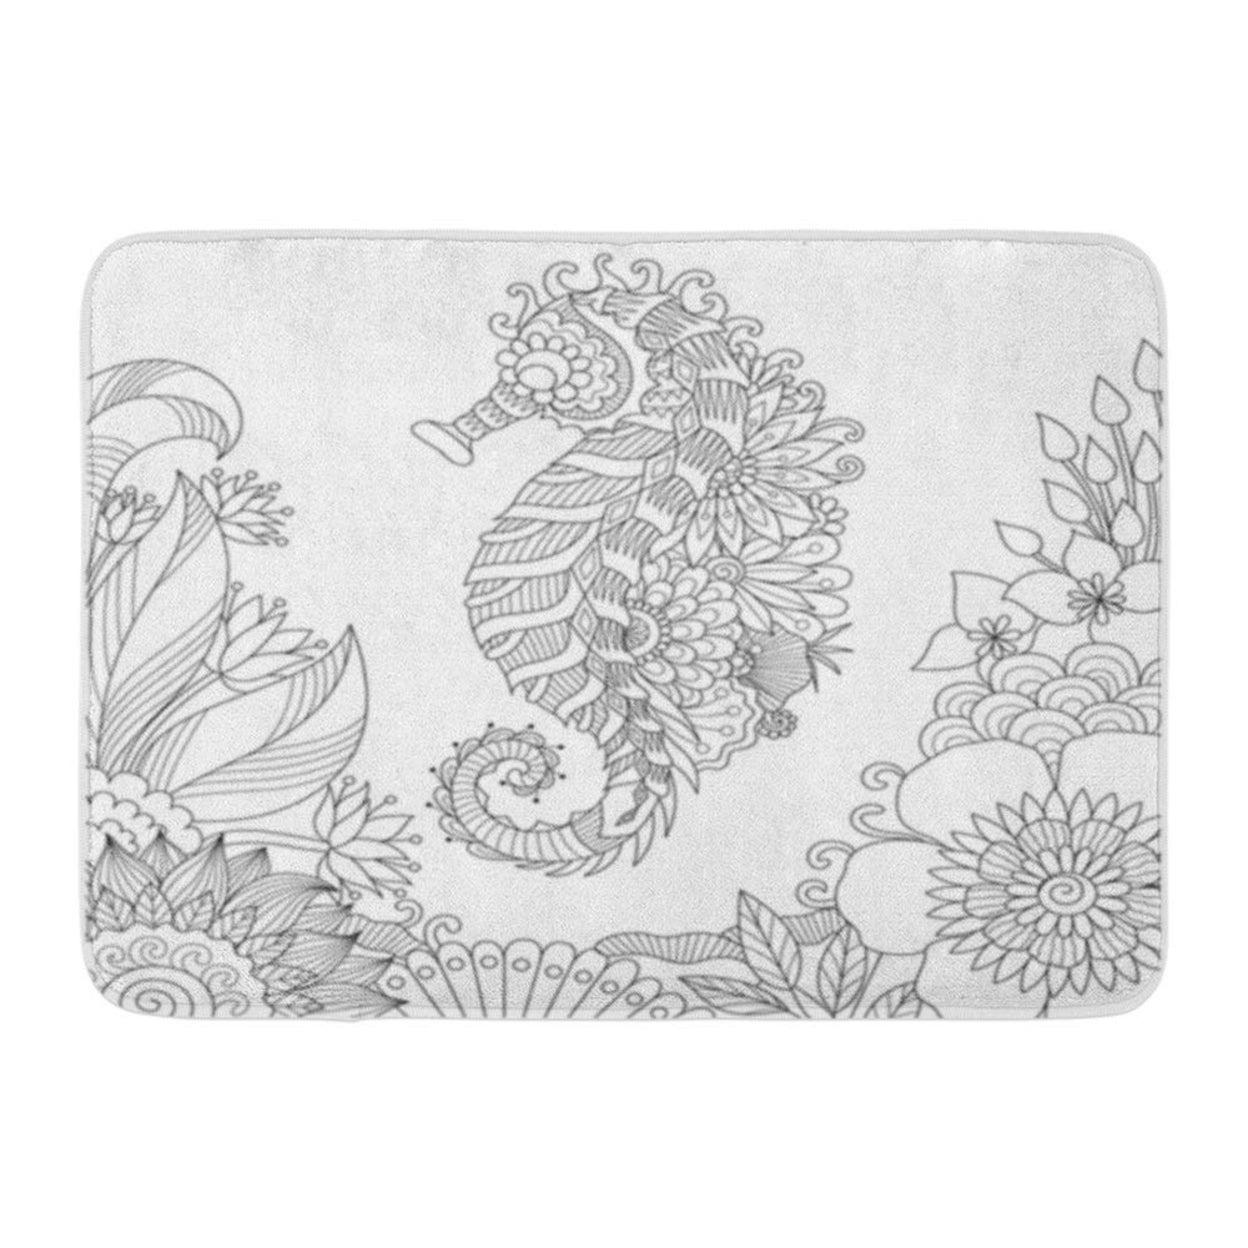 Shop Beautiful Sea Horse Swimming Among Corals For Coloring Book Page Doormat Floor Rug Bath Mat 23 6x15 7 Inch Multi On Sale Overstock 31780868